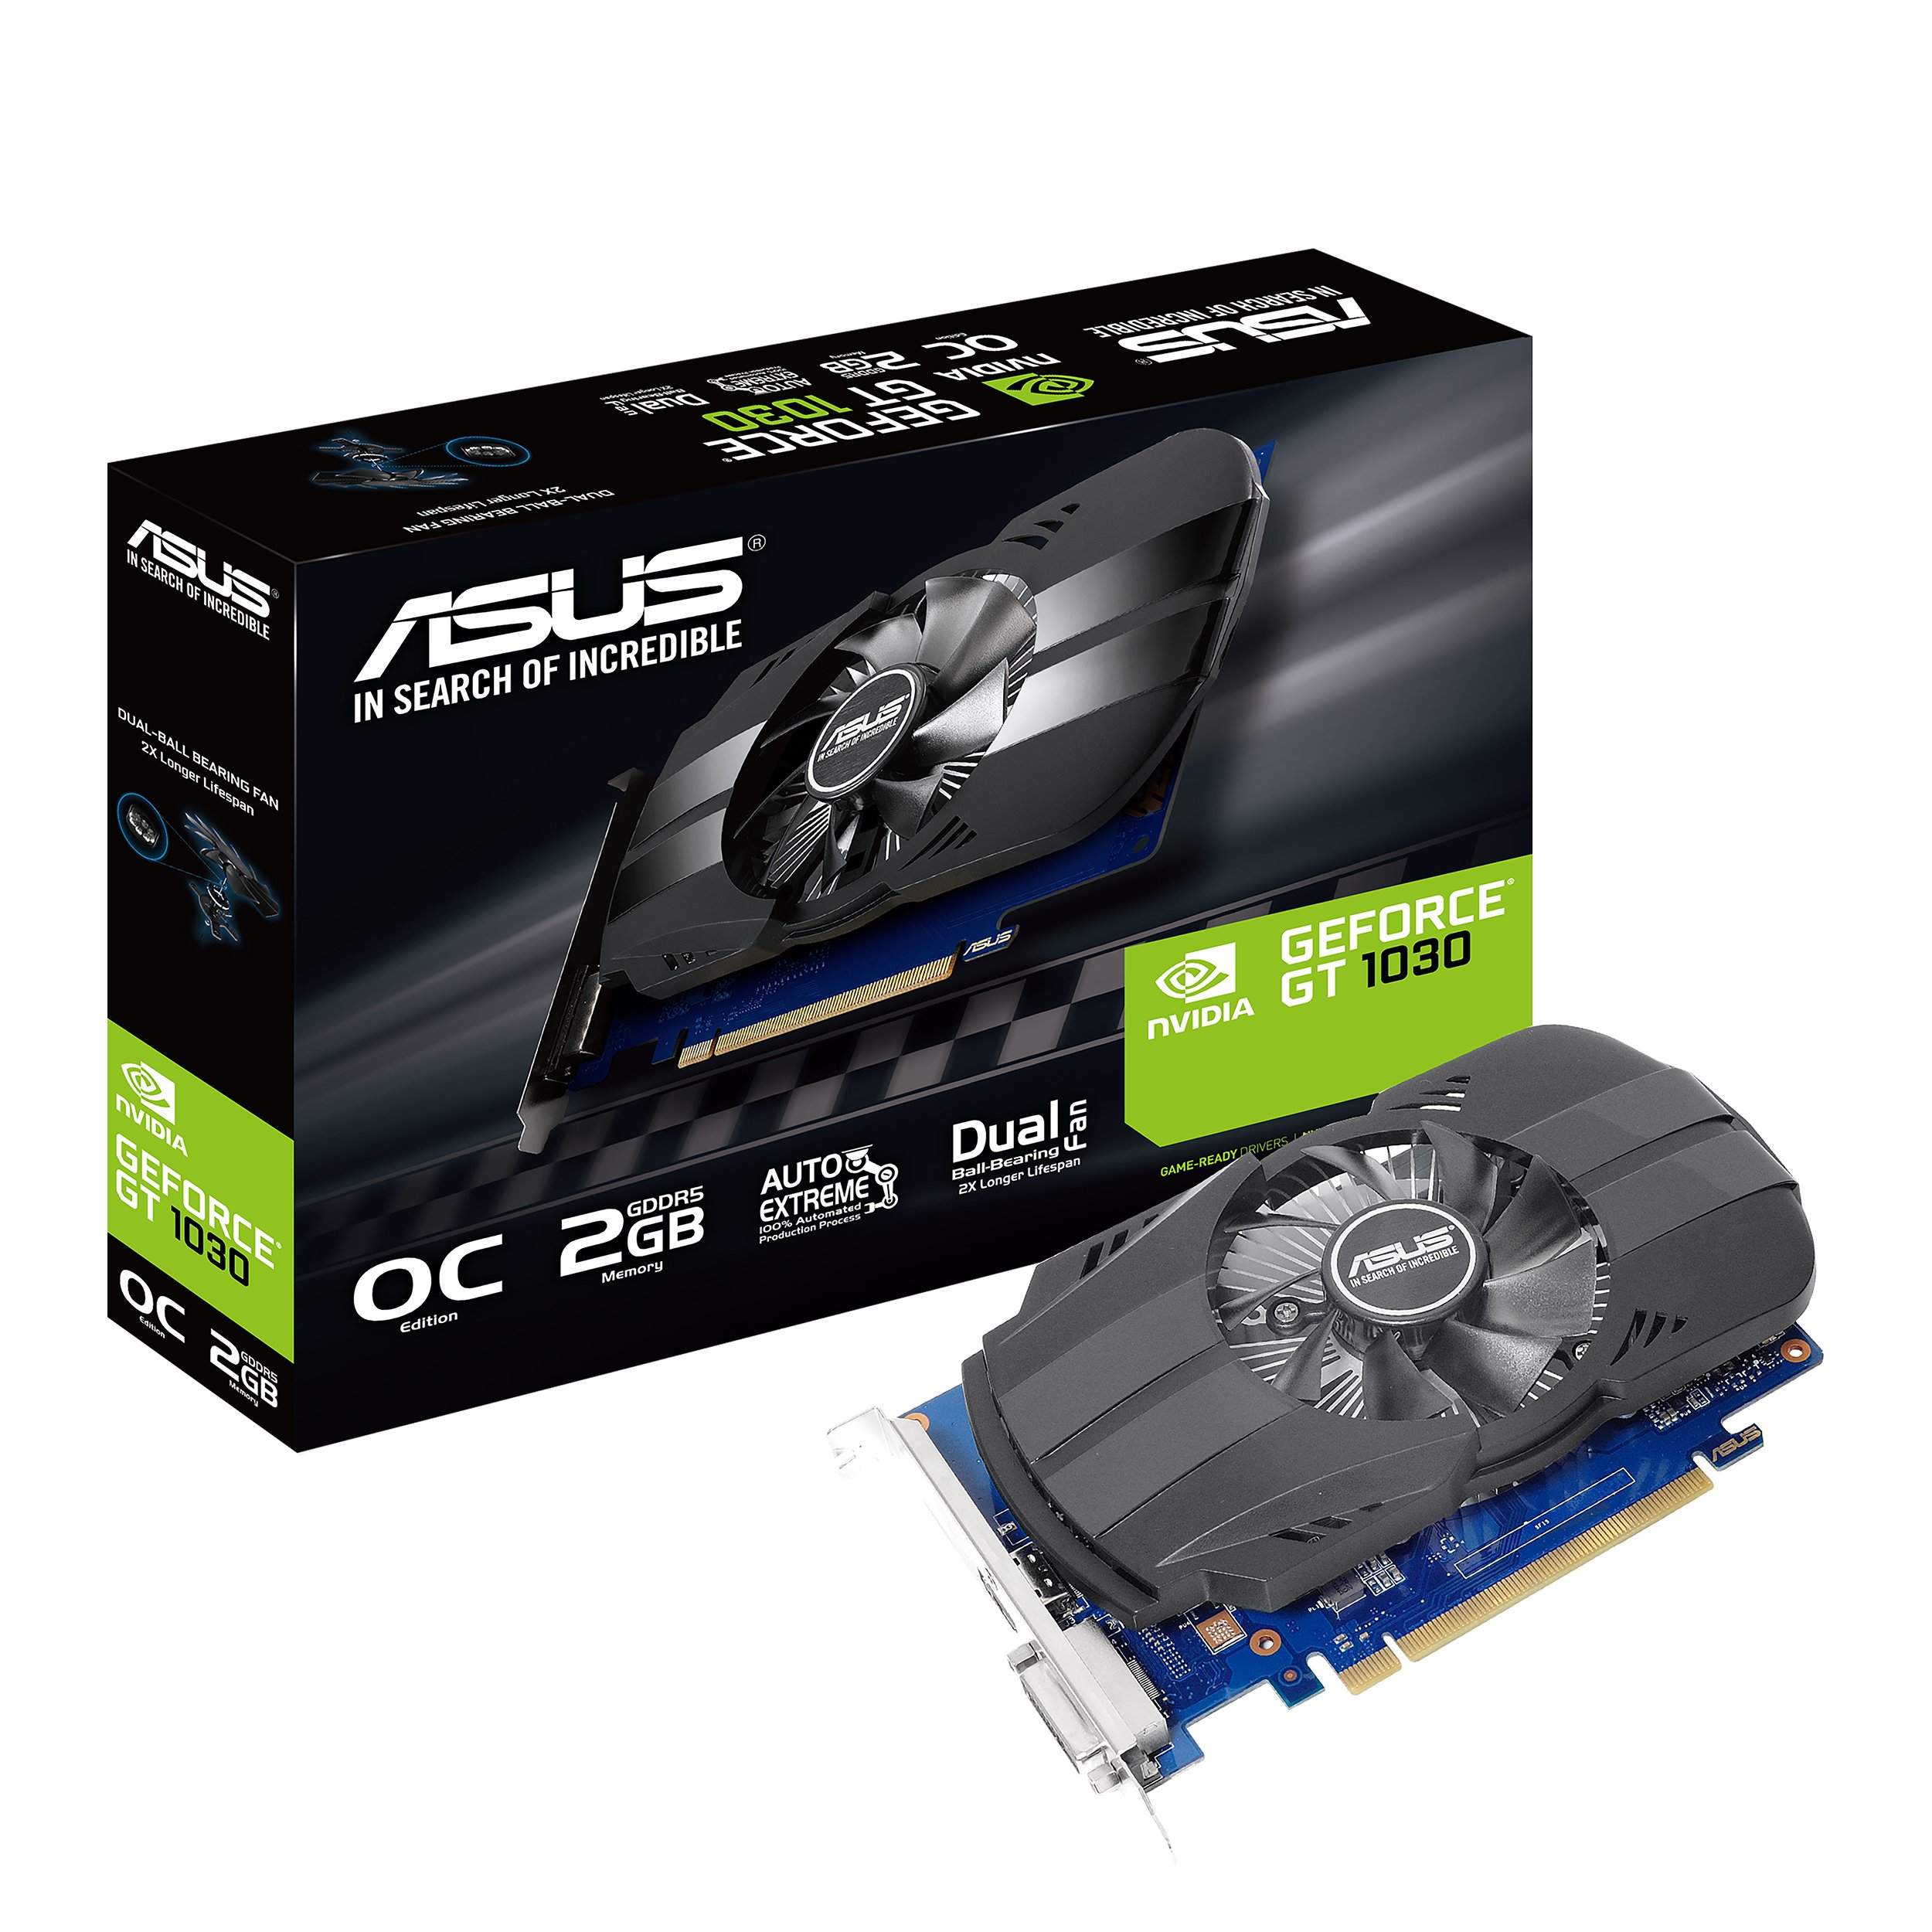 ASUS PH-GT1030-O2G GeForce GT 1030 2GB Phoenix Fan OC Edition HDMI DVI Graphics Card by Asus